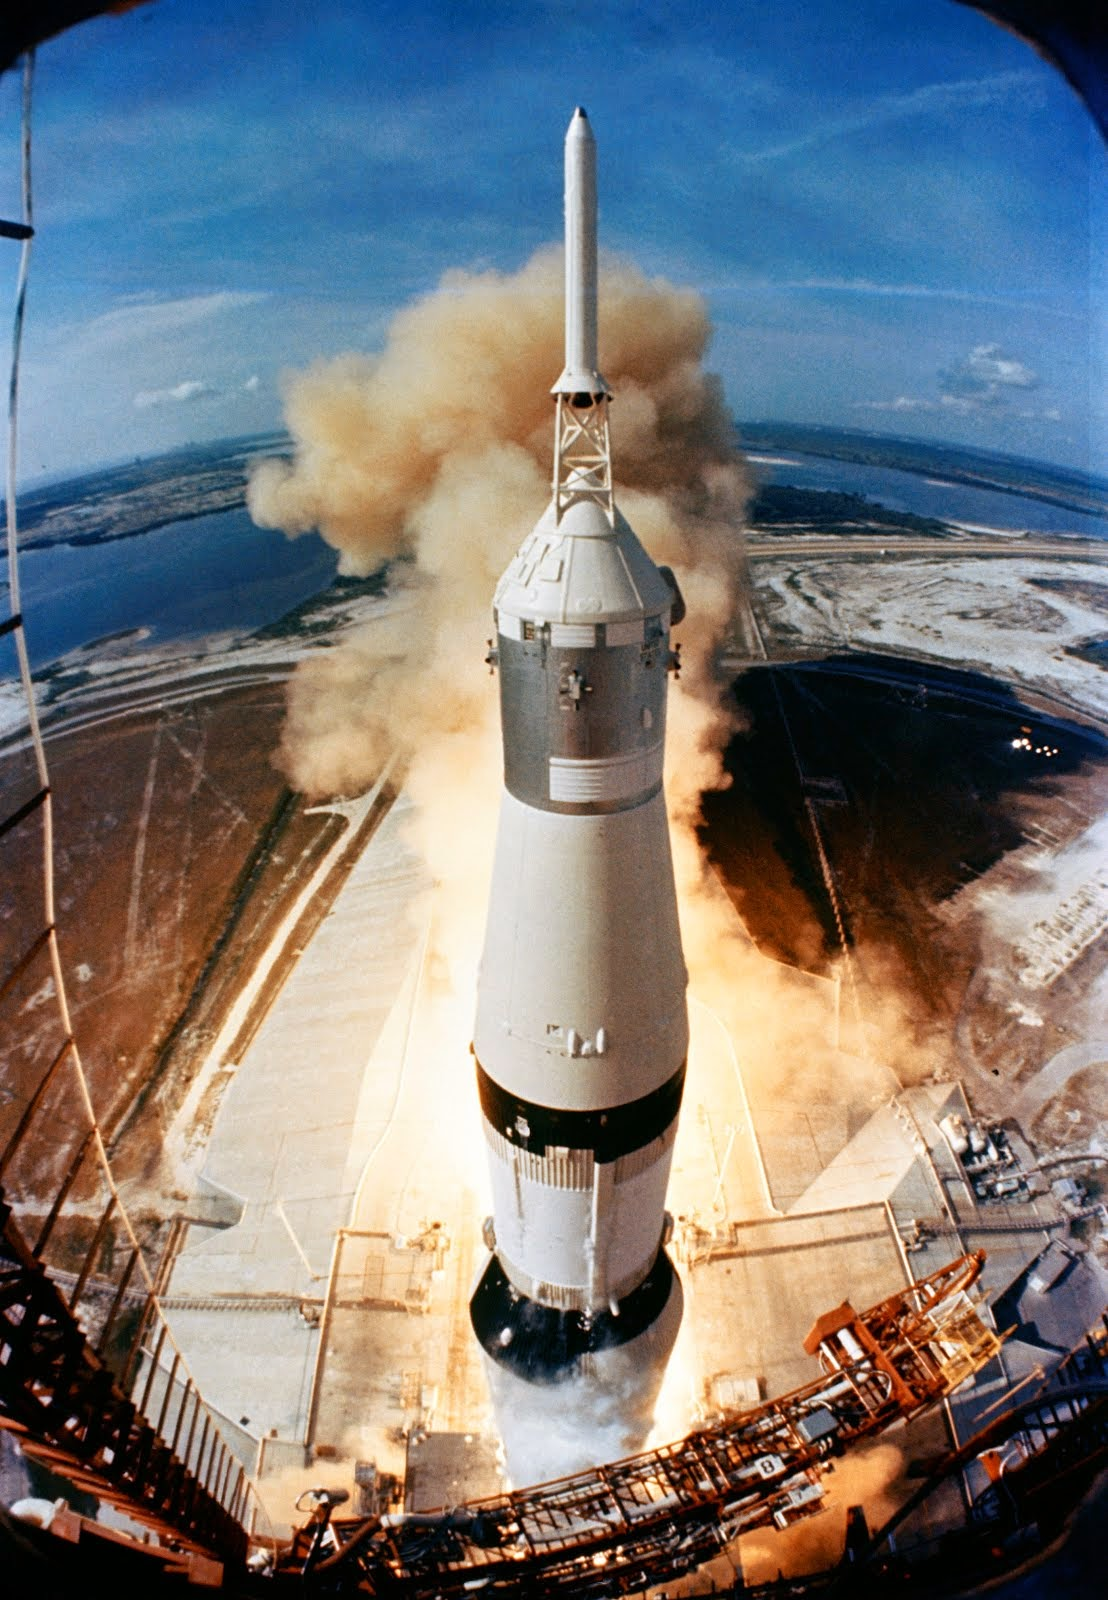 APOLLO 11 MOON MISSION BEGAN ON JULY 16, 1969